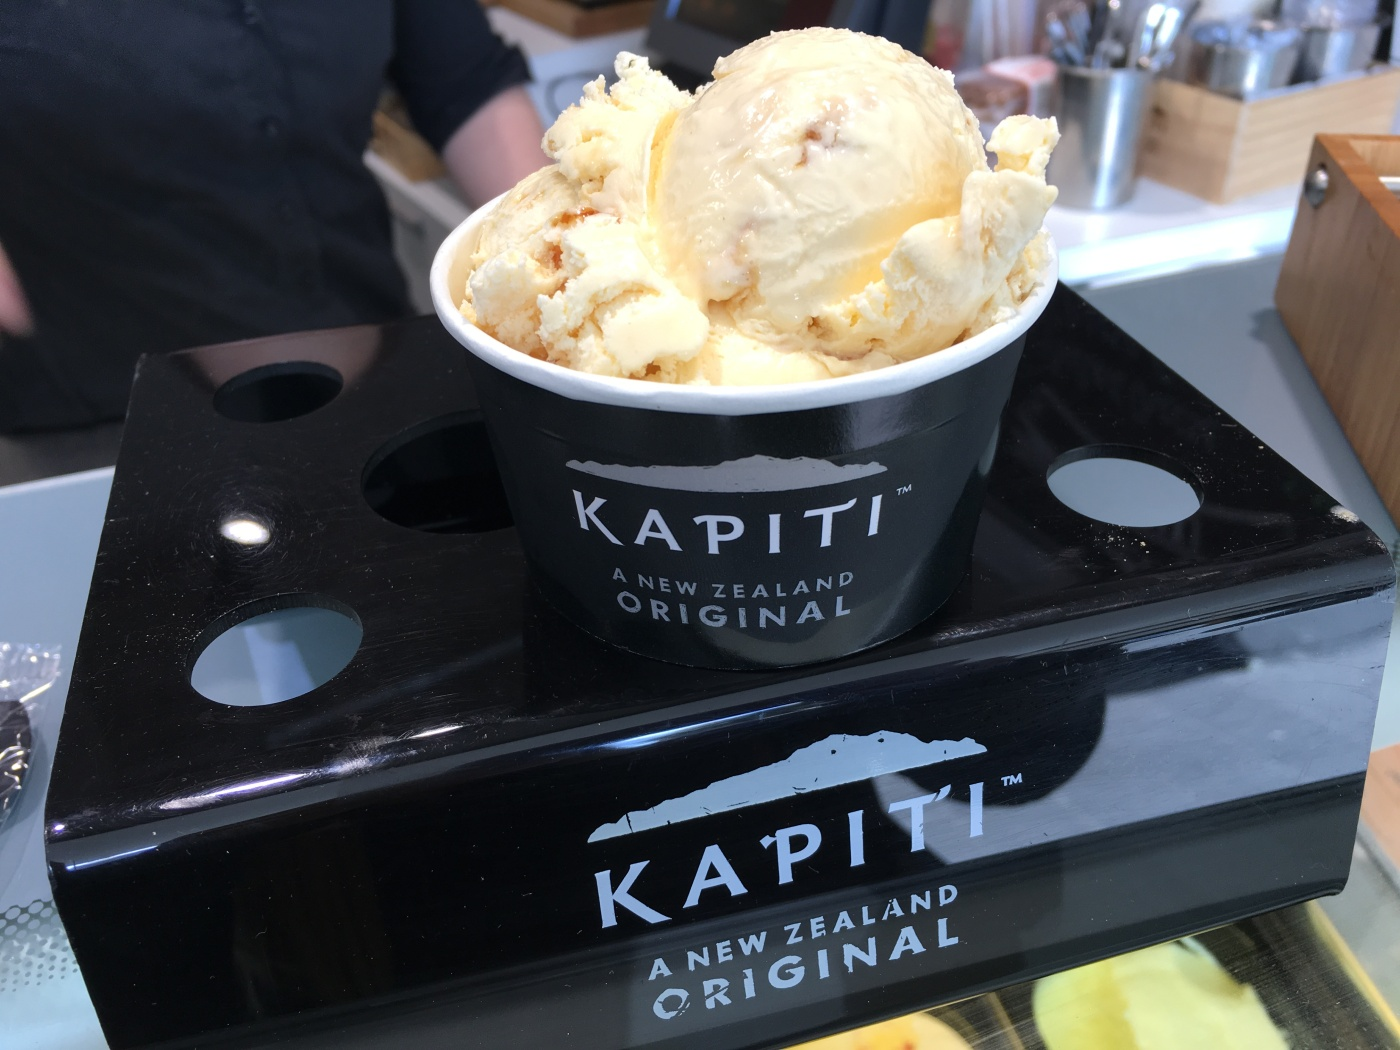 Scoops of Hokey Pokey Ice Cream (Vanilla Ice Cream Combined with Honeycomb Toffee) on the Counter at The Kapiti Store in Auckland, New Zealand